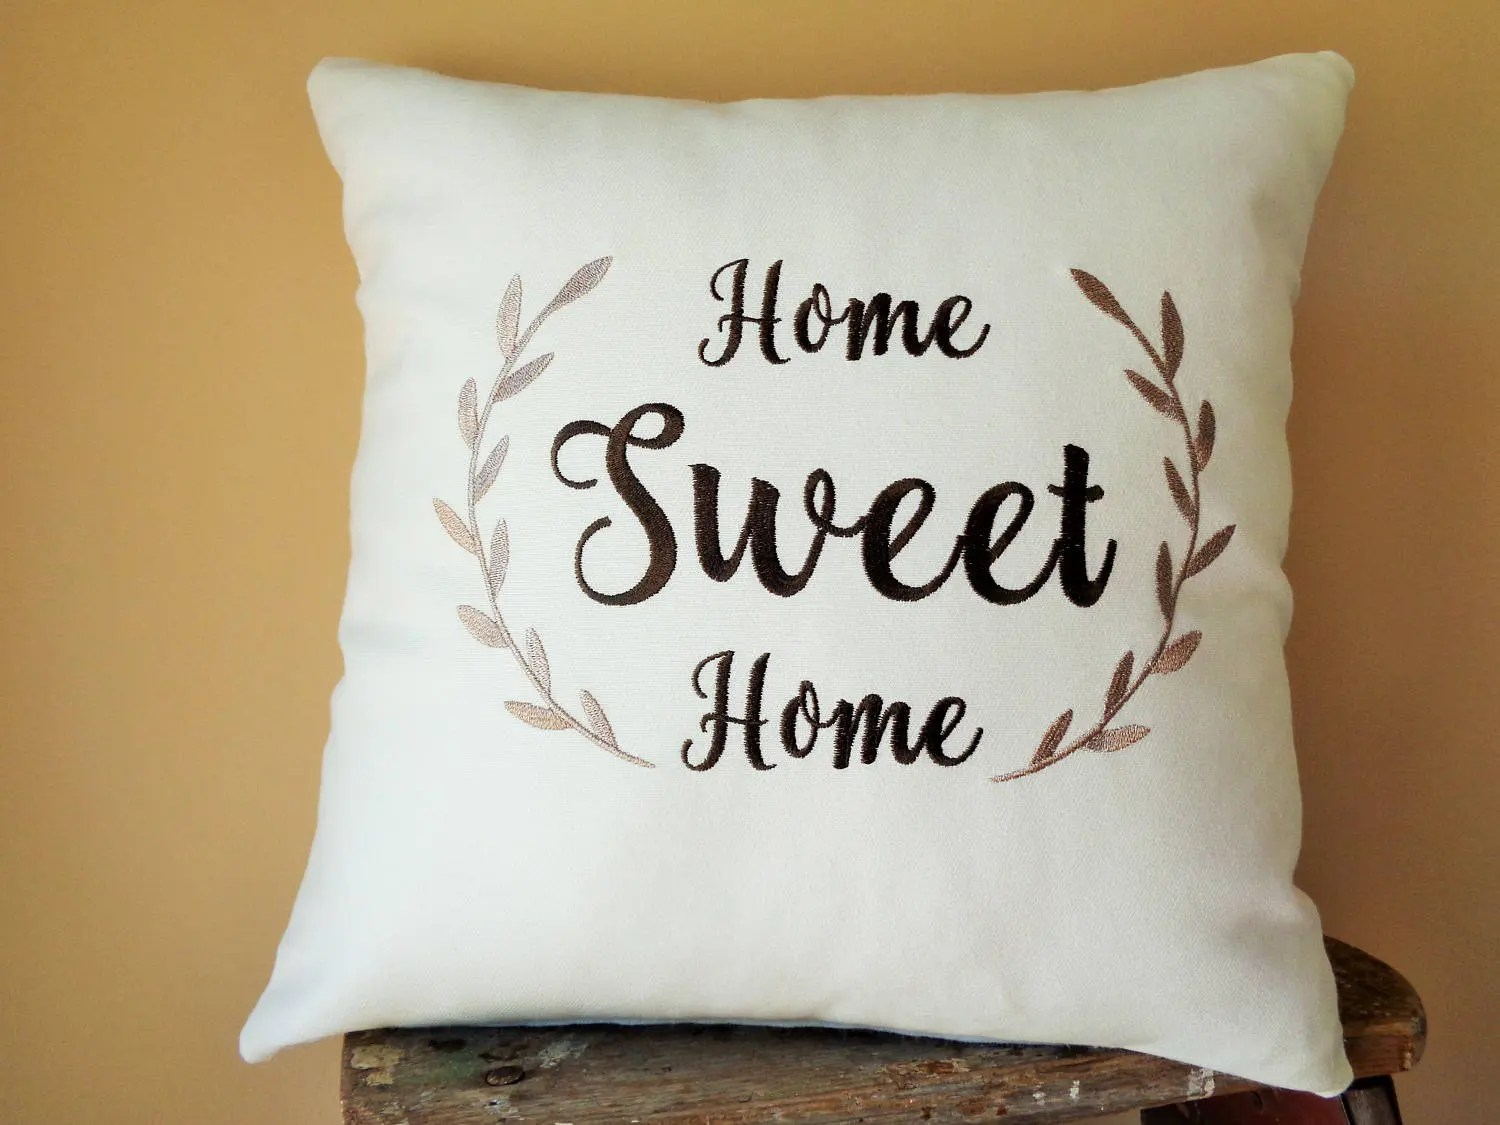 Farmhouse Throw Pillows Rustic Farmhouse Pillows Fixer Upper